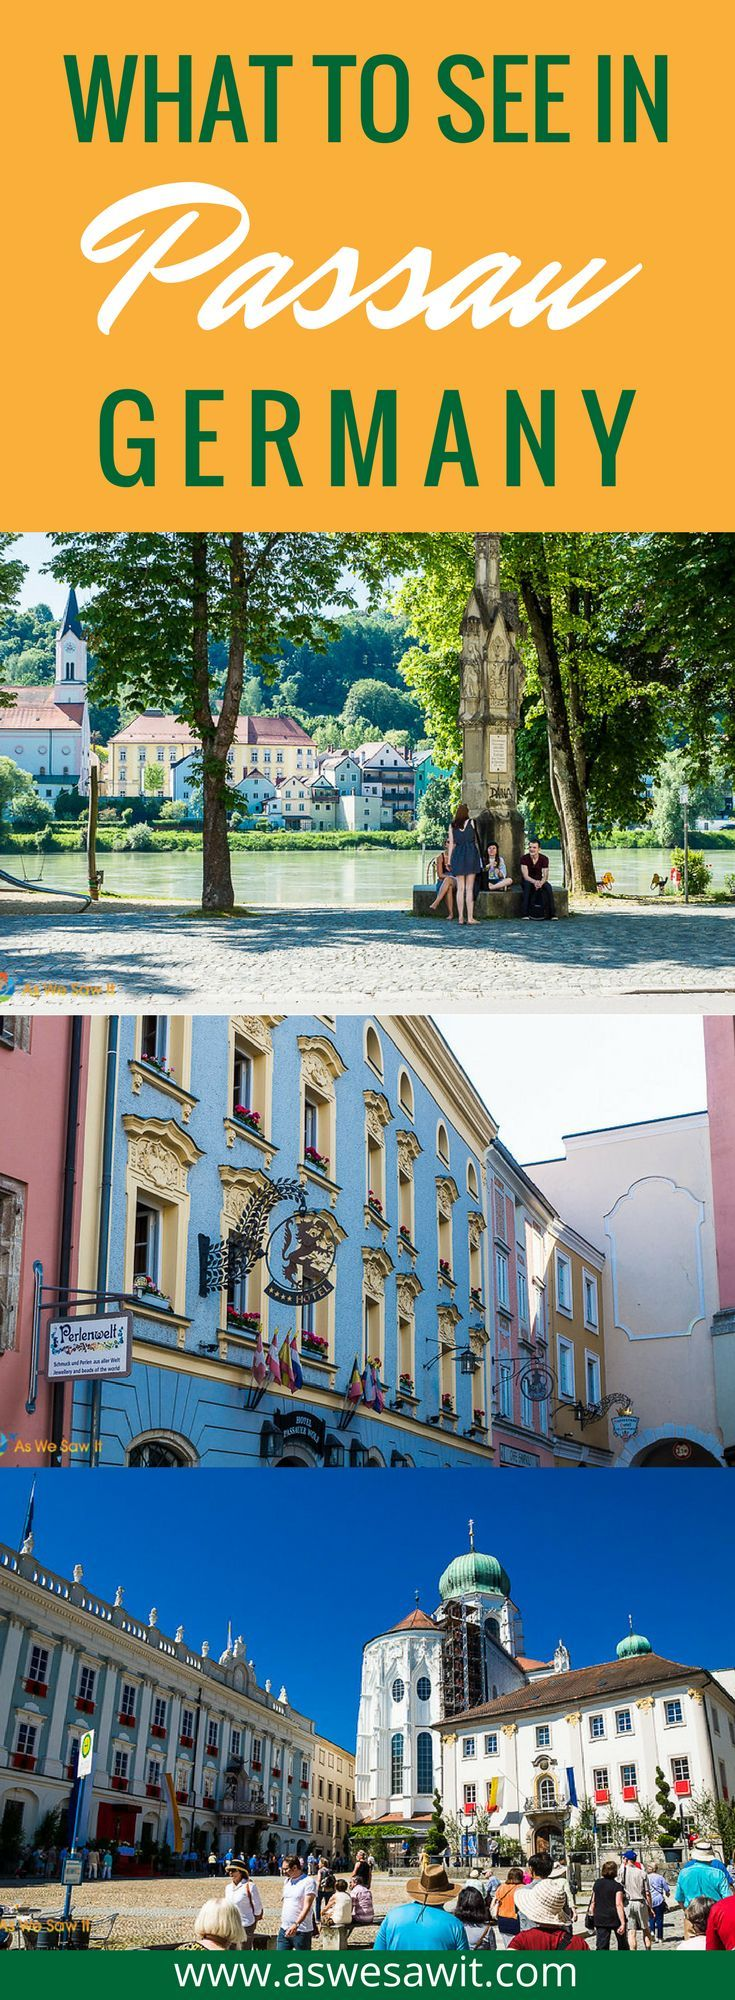 Passau, Germany is a picturesque town that has been shaped by its location, at the confluence of three rivers: the blue Danube, the green Inn and the black Ilz. Click through to find out what to see in Passau, Germany. | As We Saw It #germany #rivercruise #europe #passau